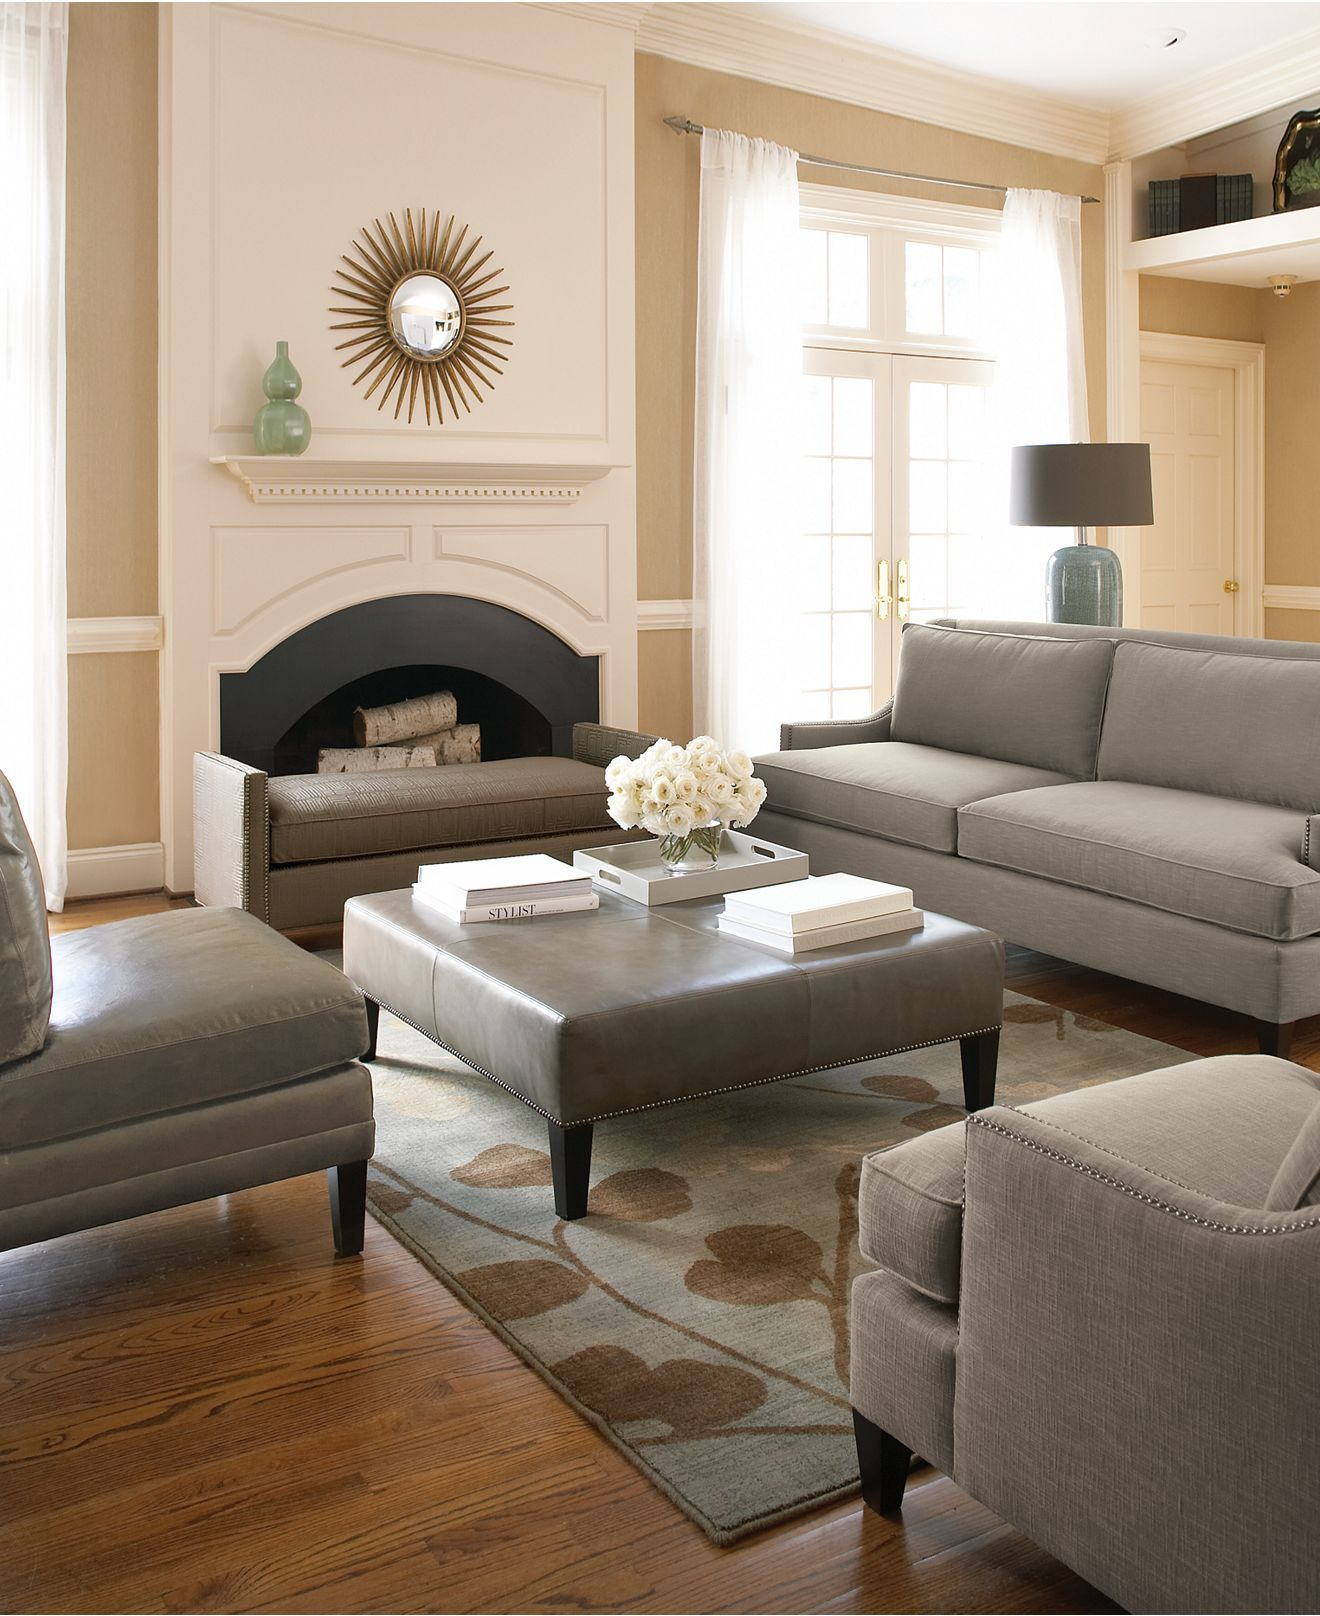 White Front Room Furniture: Khaki Walls With Grey, Black